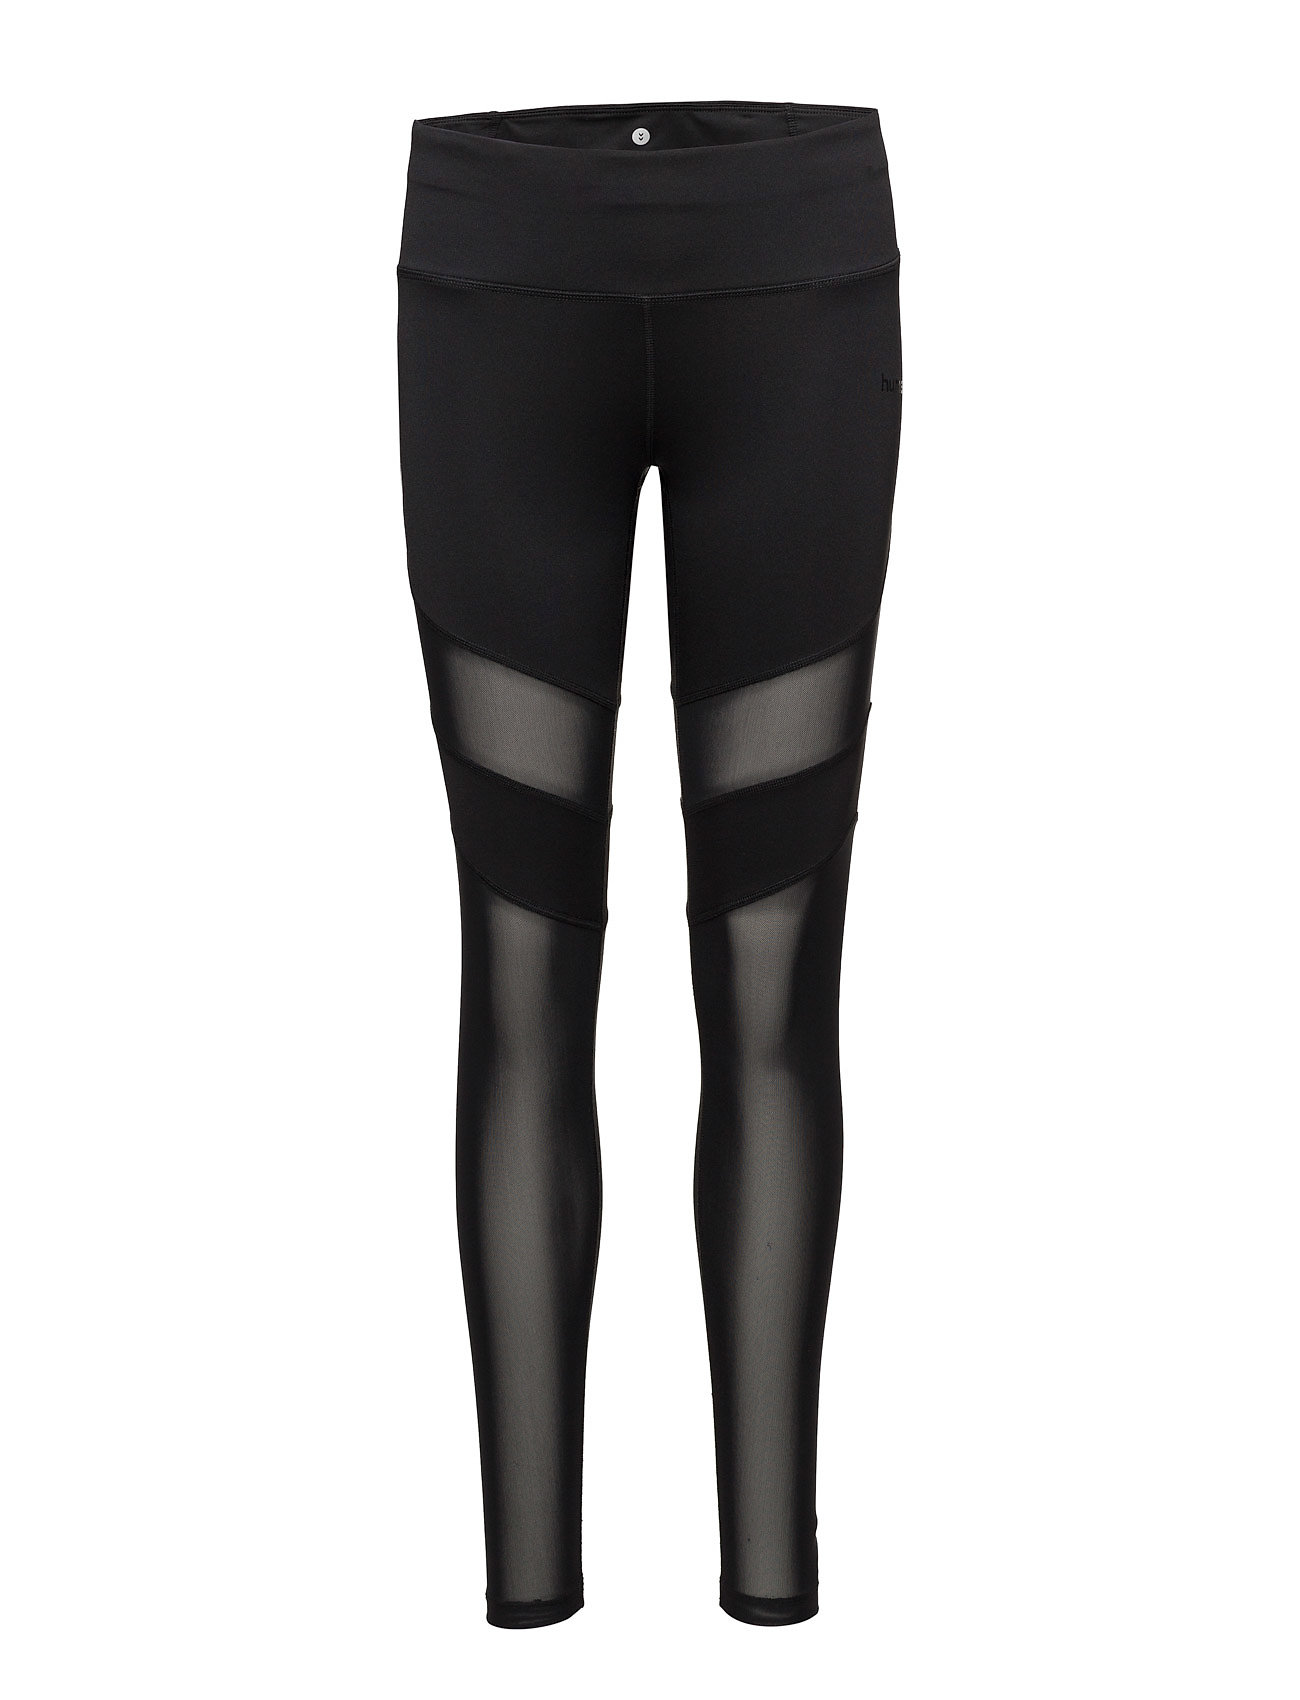 Rosa Tights Hummel Trænings leggings til Damer i